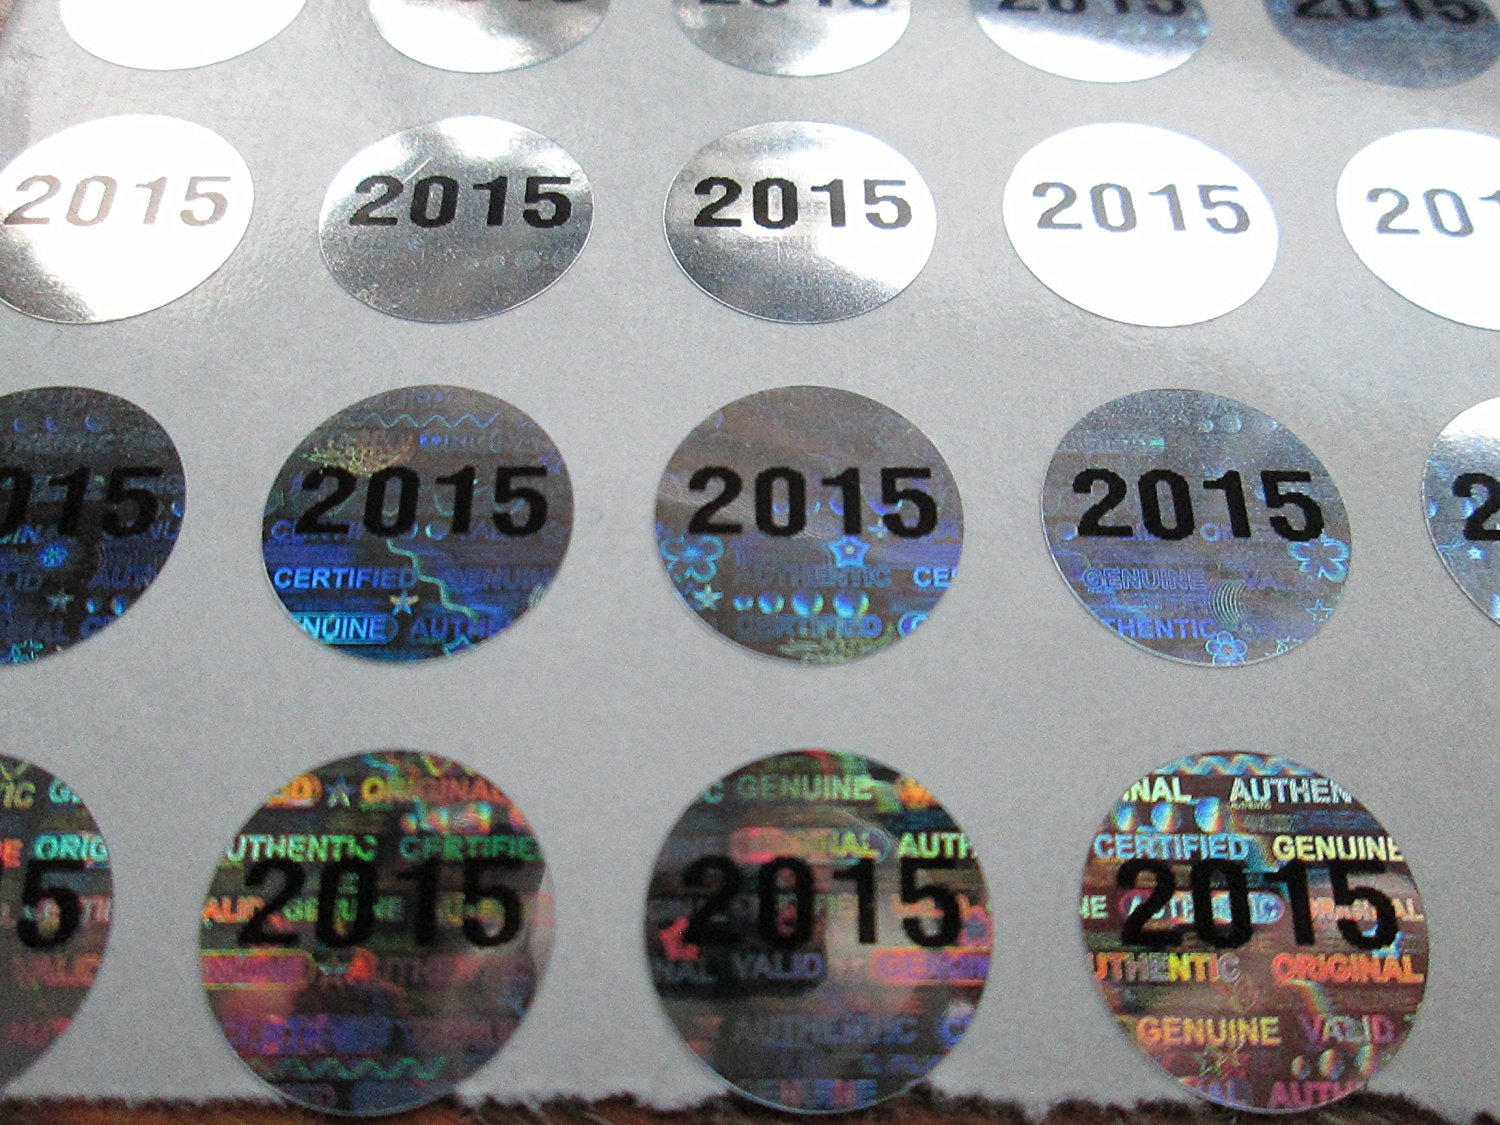 500 2015 bright silver hologram tamper evident high security labels stickers 5 inch round